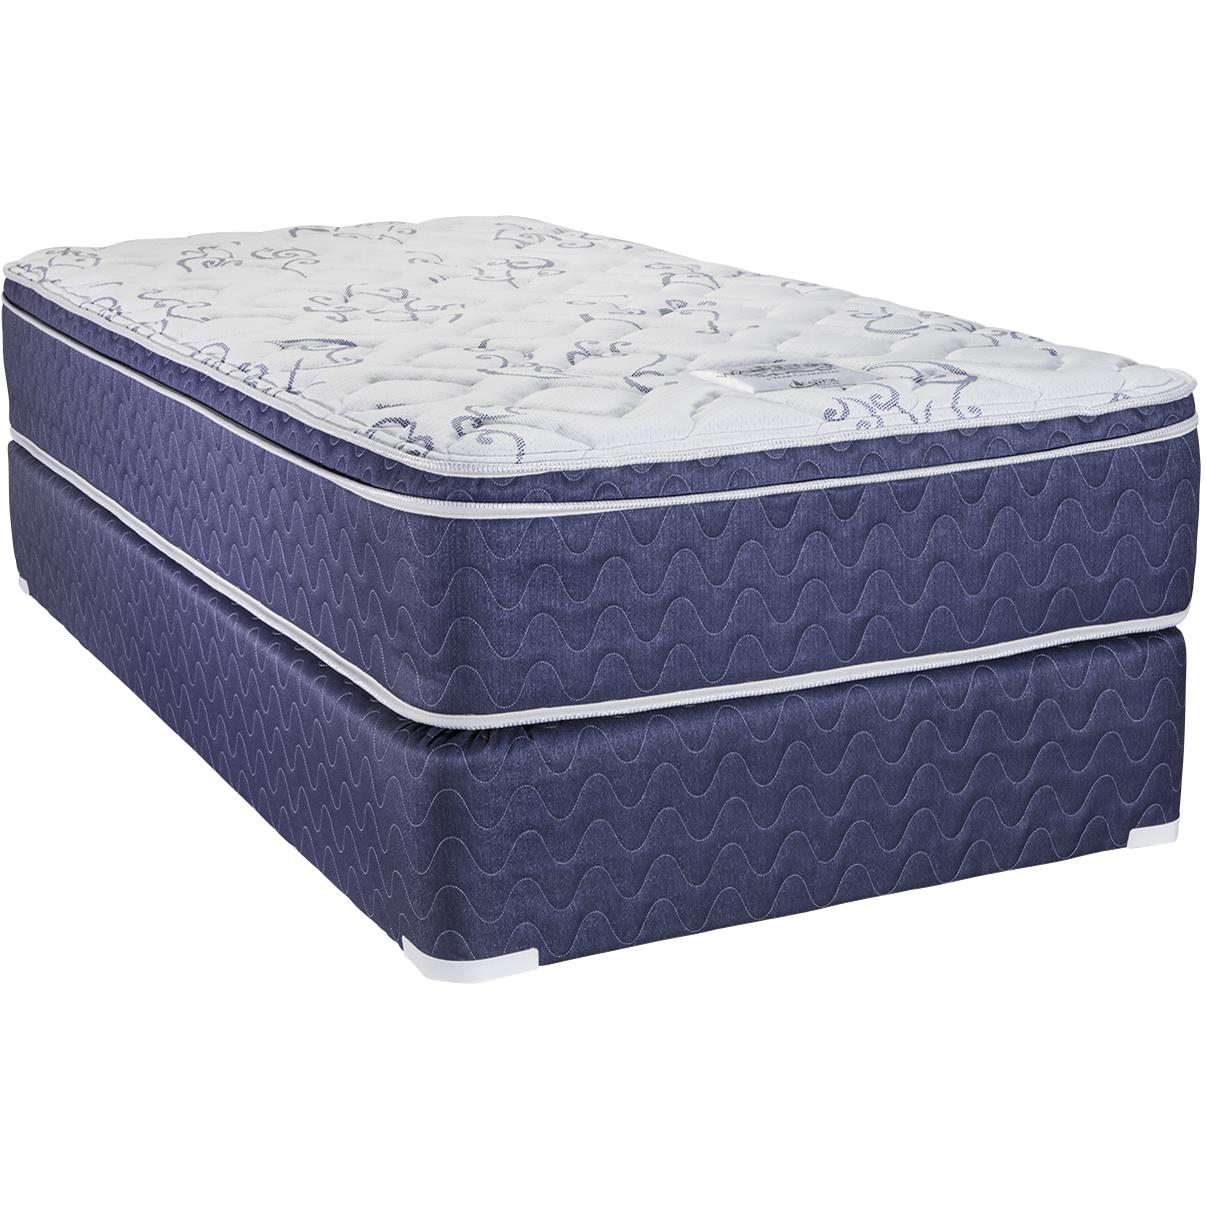 Capitol Bedding Warrenton Mattress Queen Innerspring ...